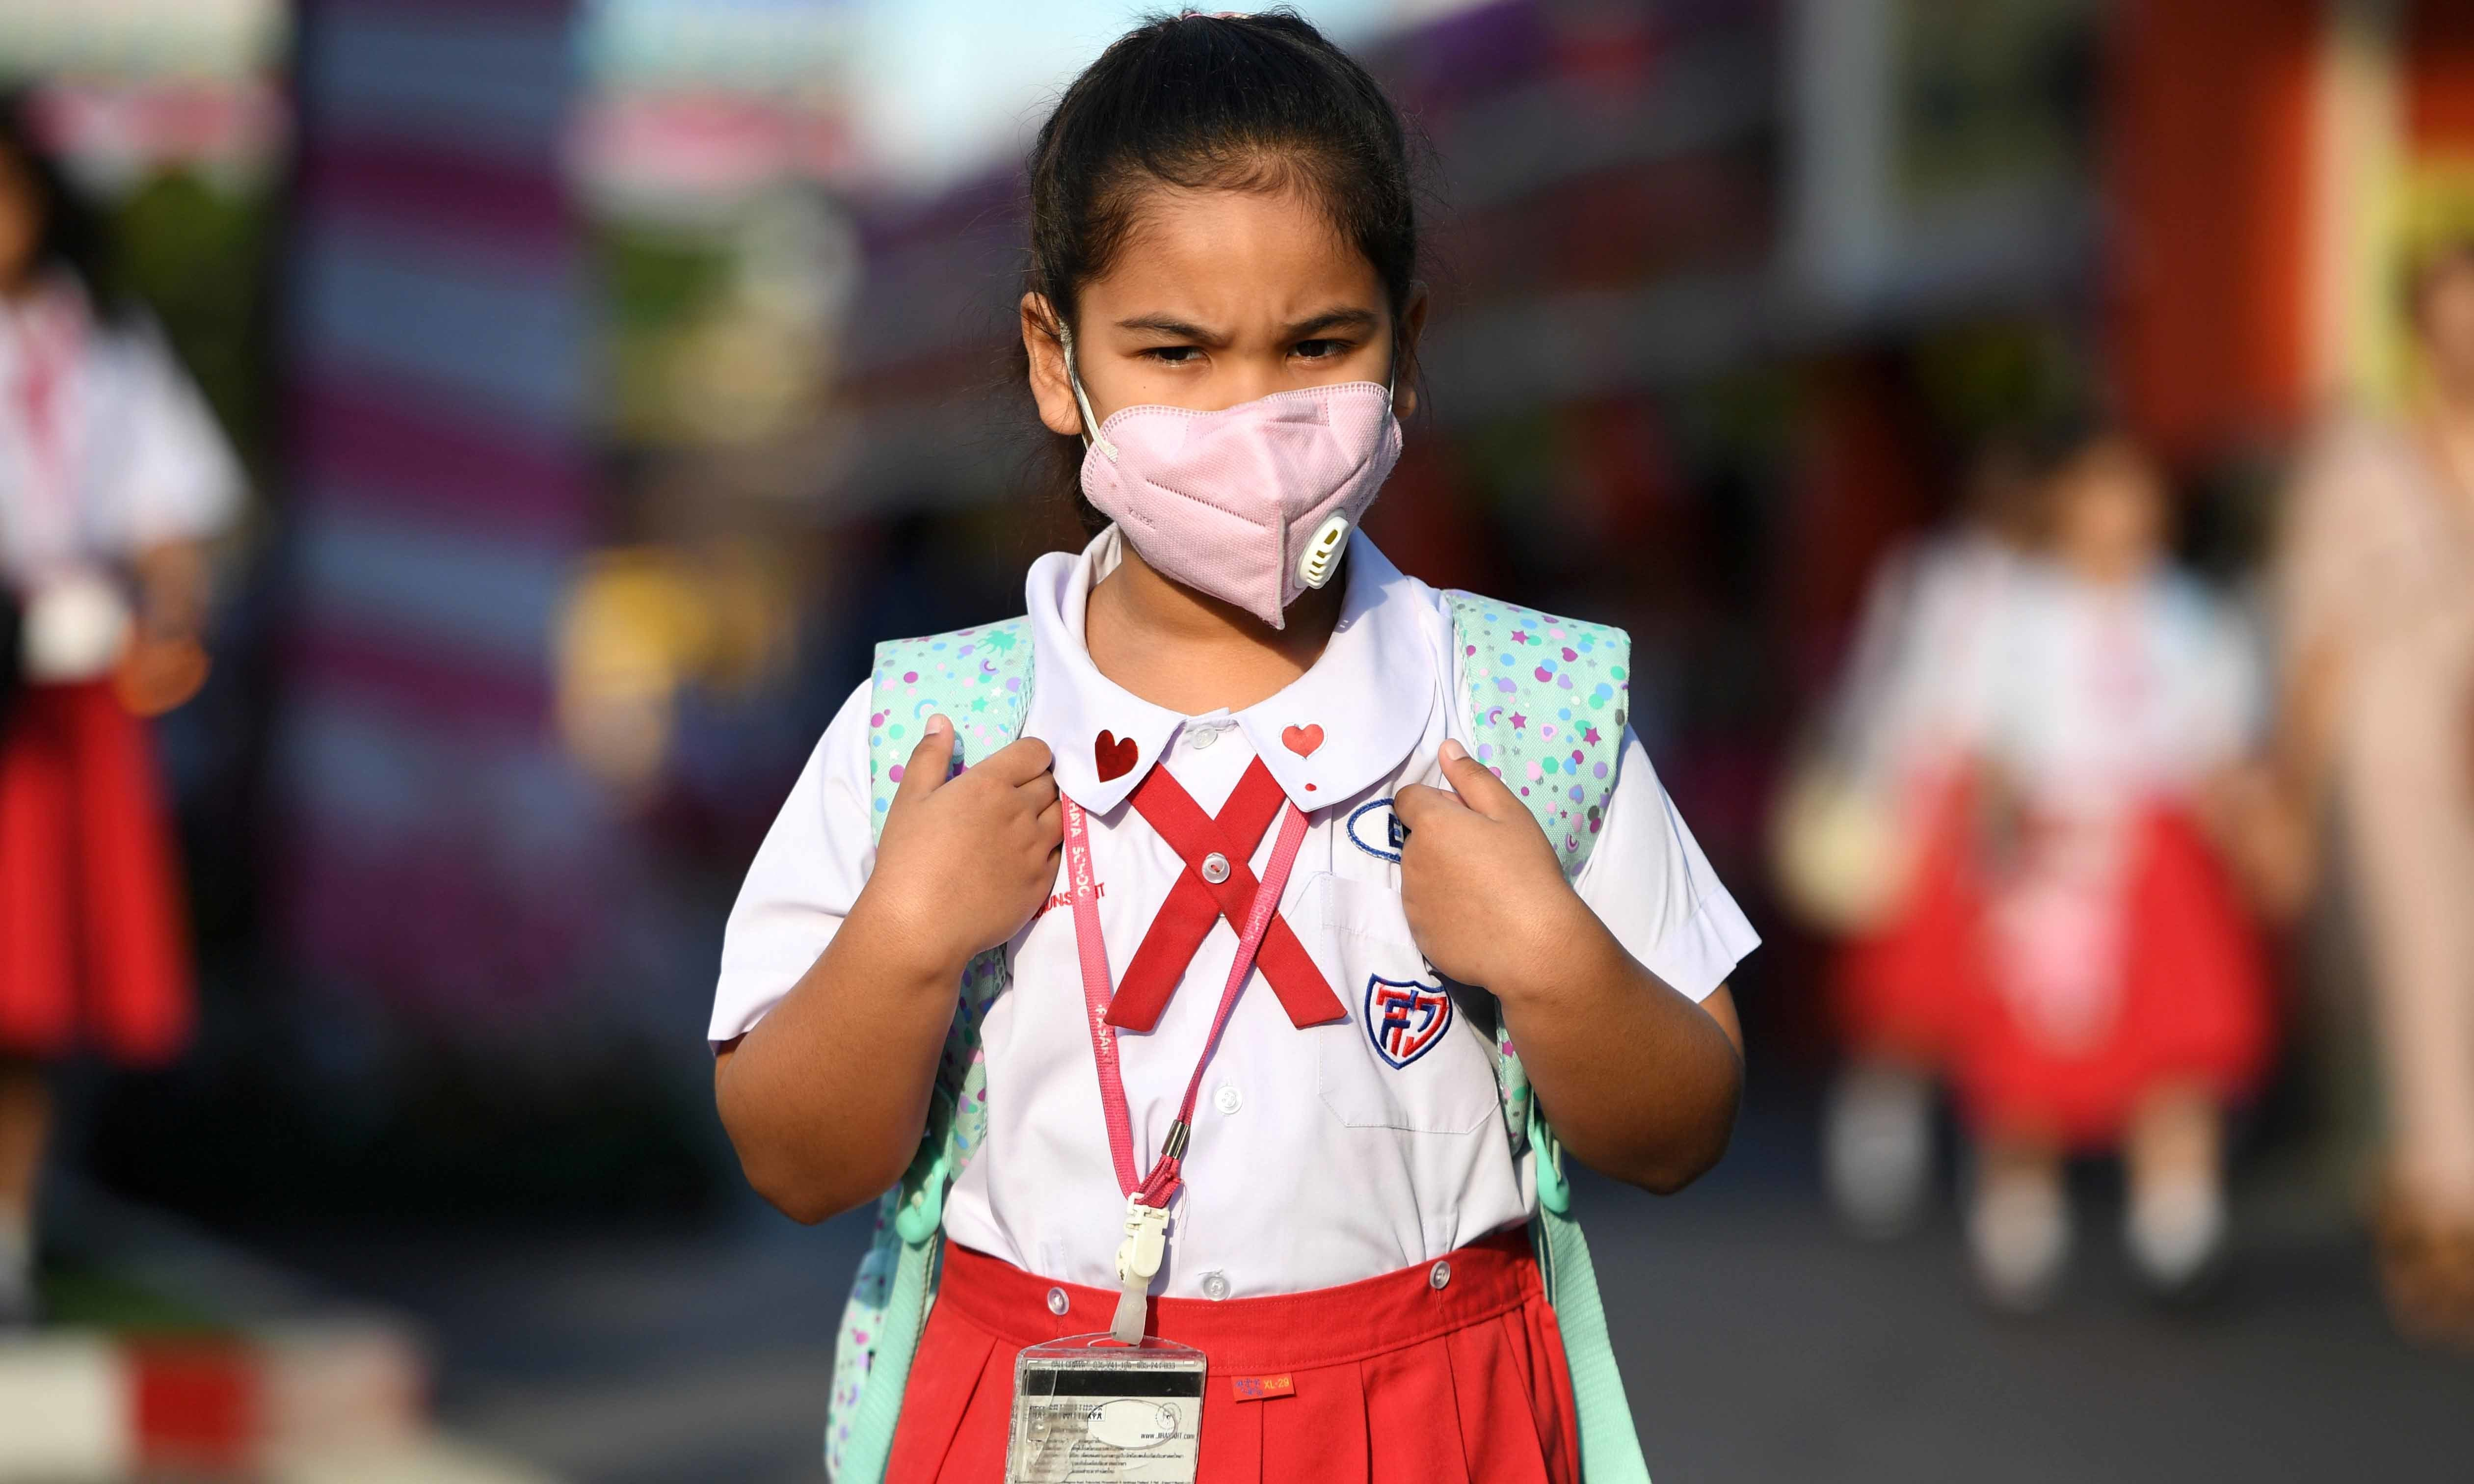 A girl arrives to school wearing a protective mask on Valentine's Day in Ayutthaya, outside Bangkok, Thailand on  February 14. — Reuters